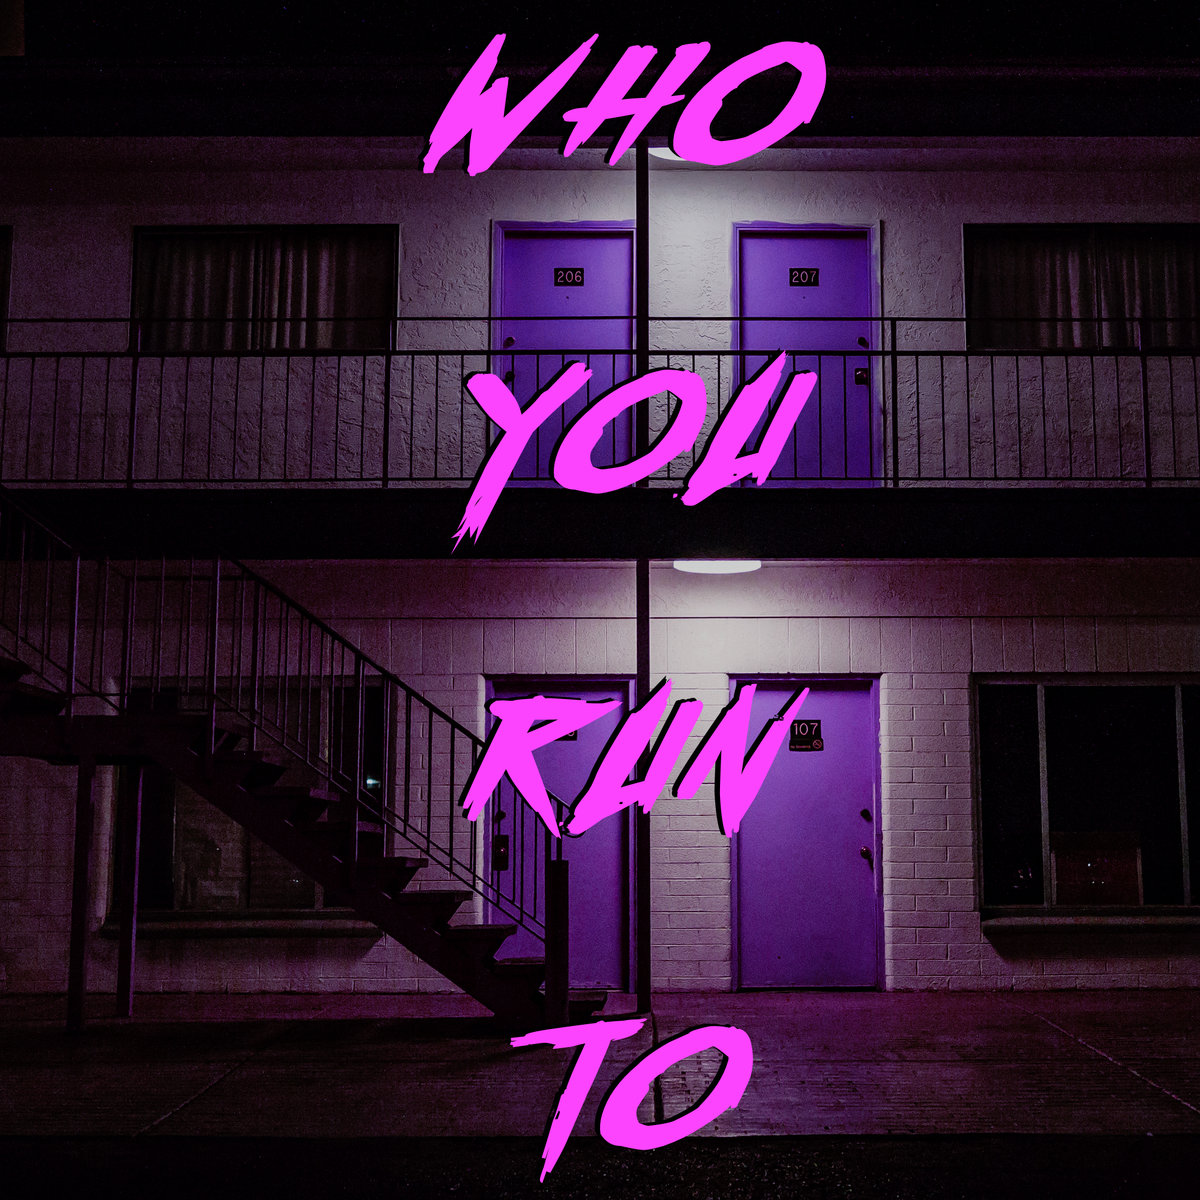 a1281118961 10 - The Bad Dreamers – Who You Run To